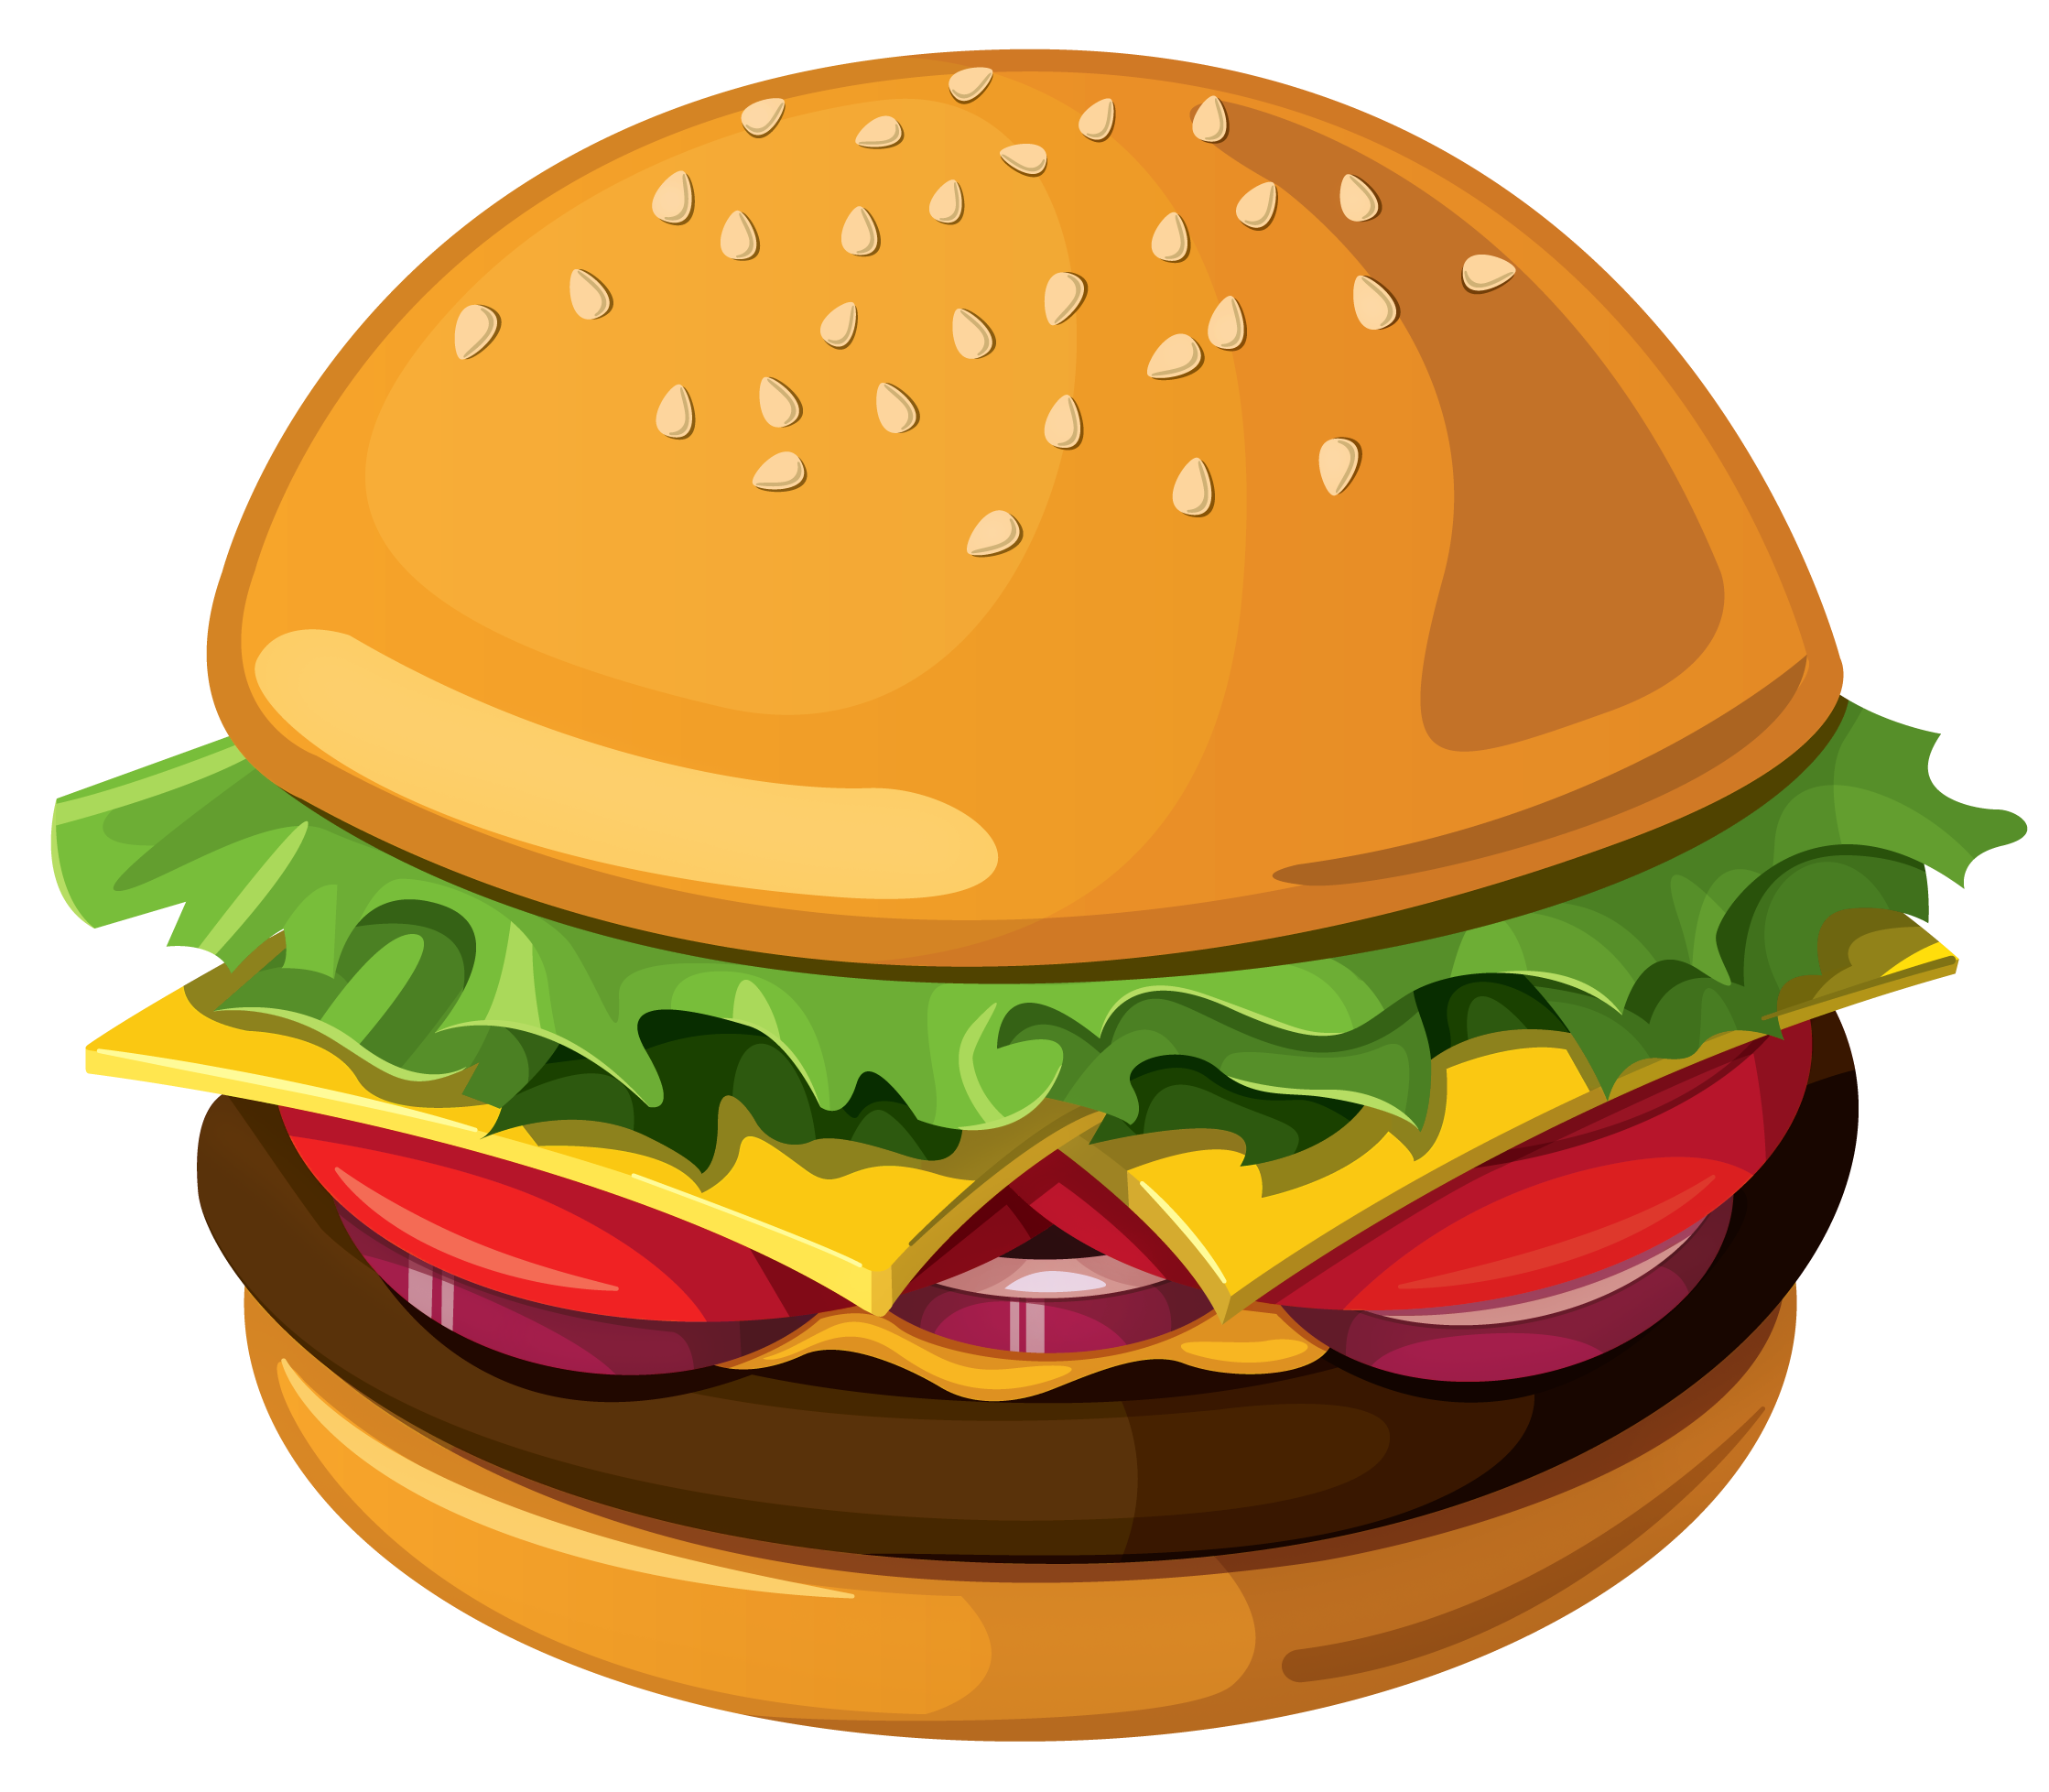 Cheeseburger clipart face. Burgers free download best